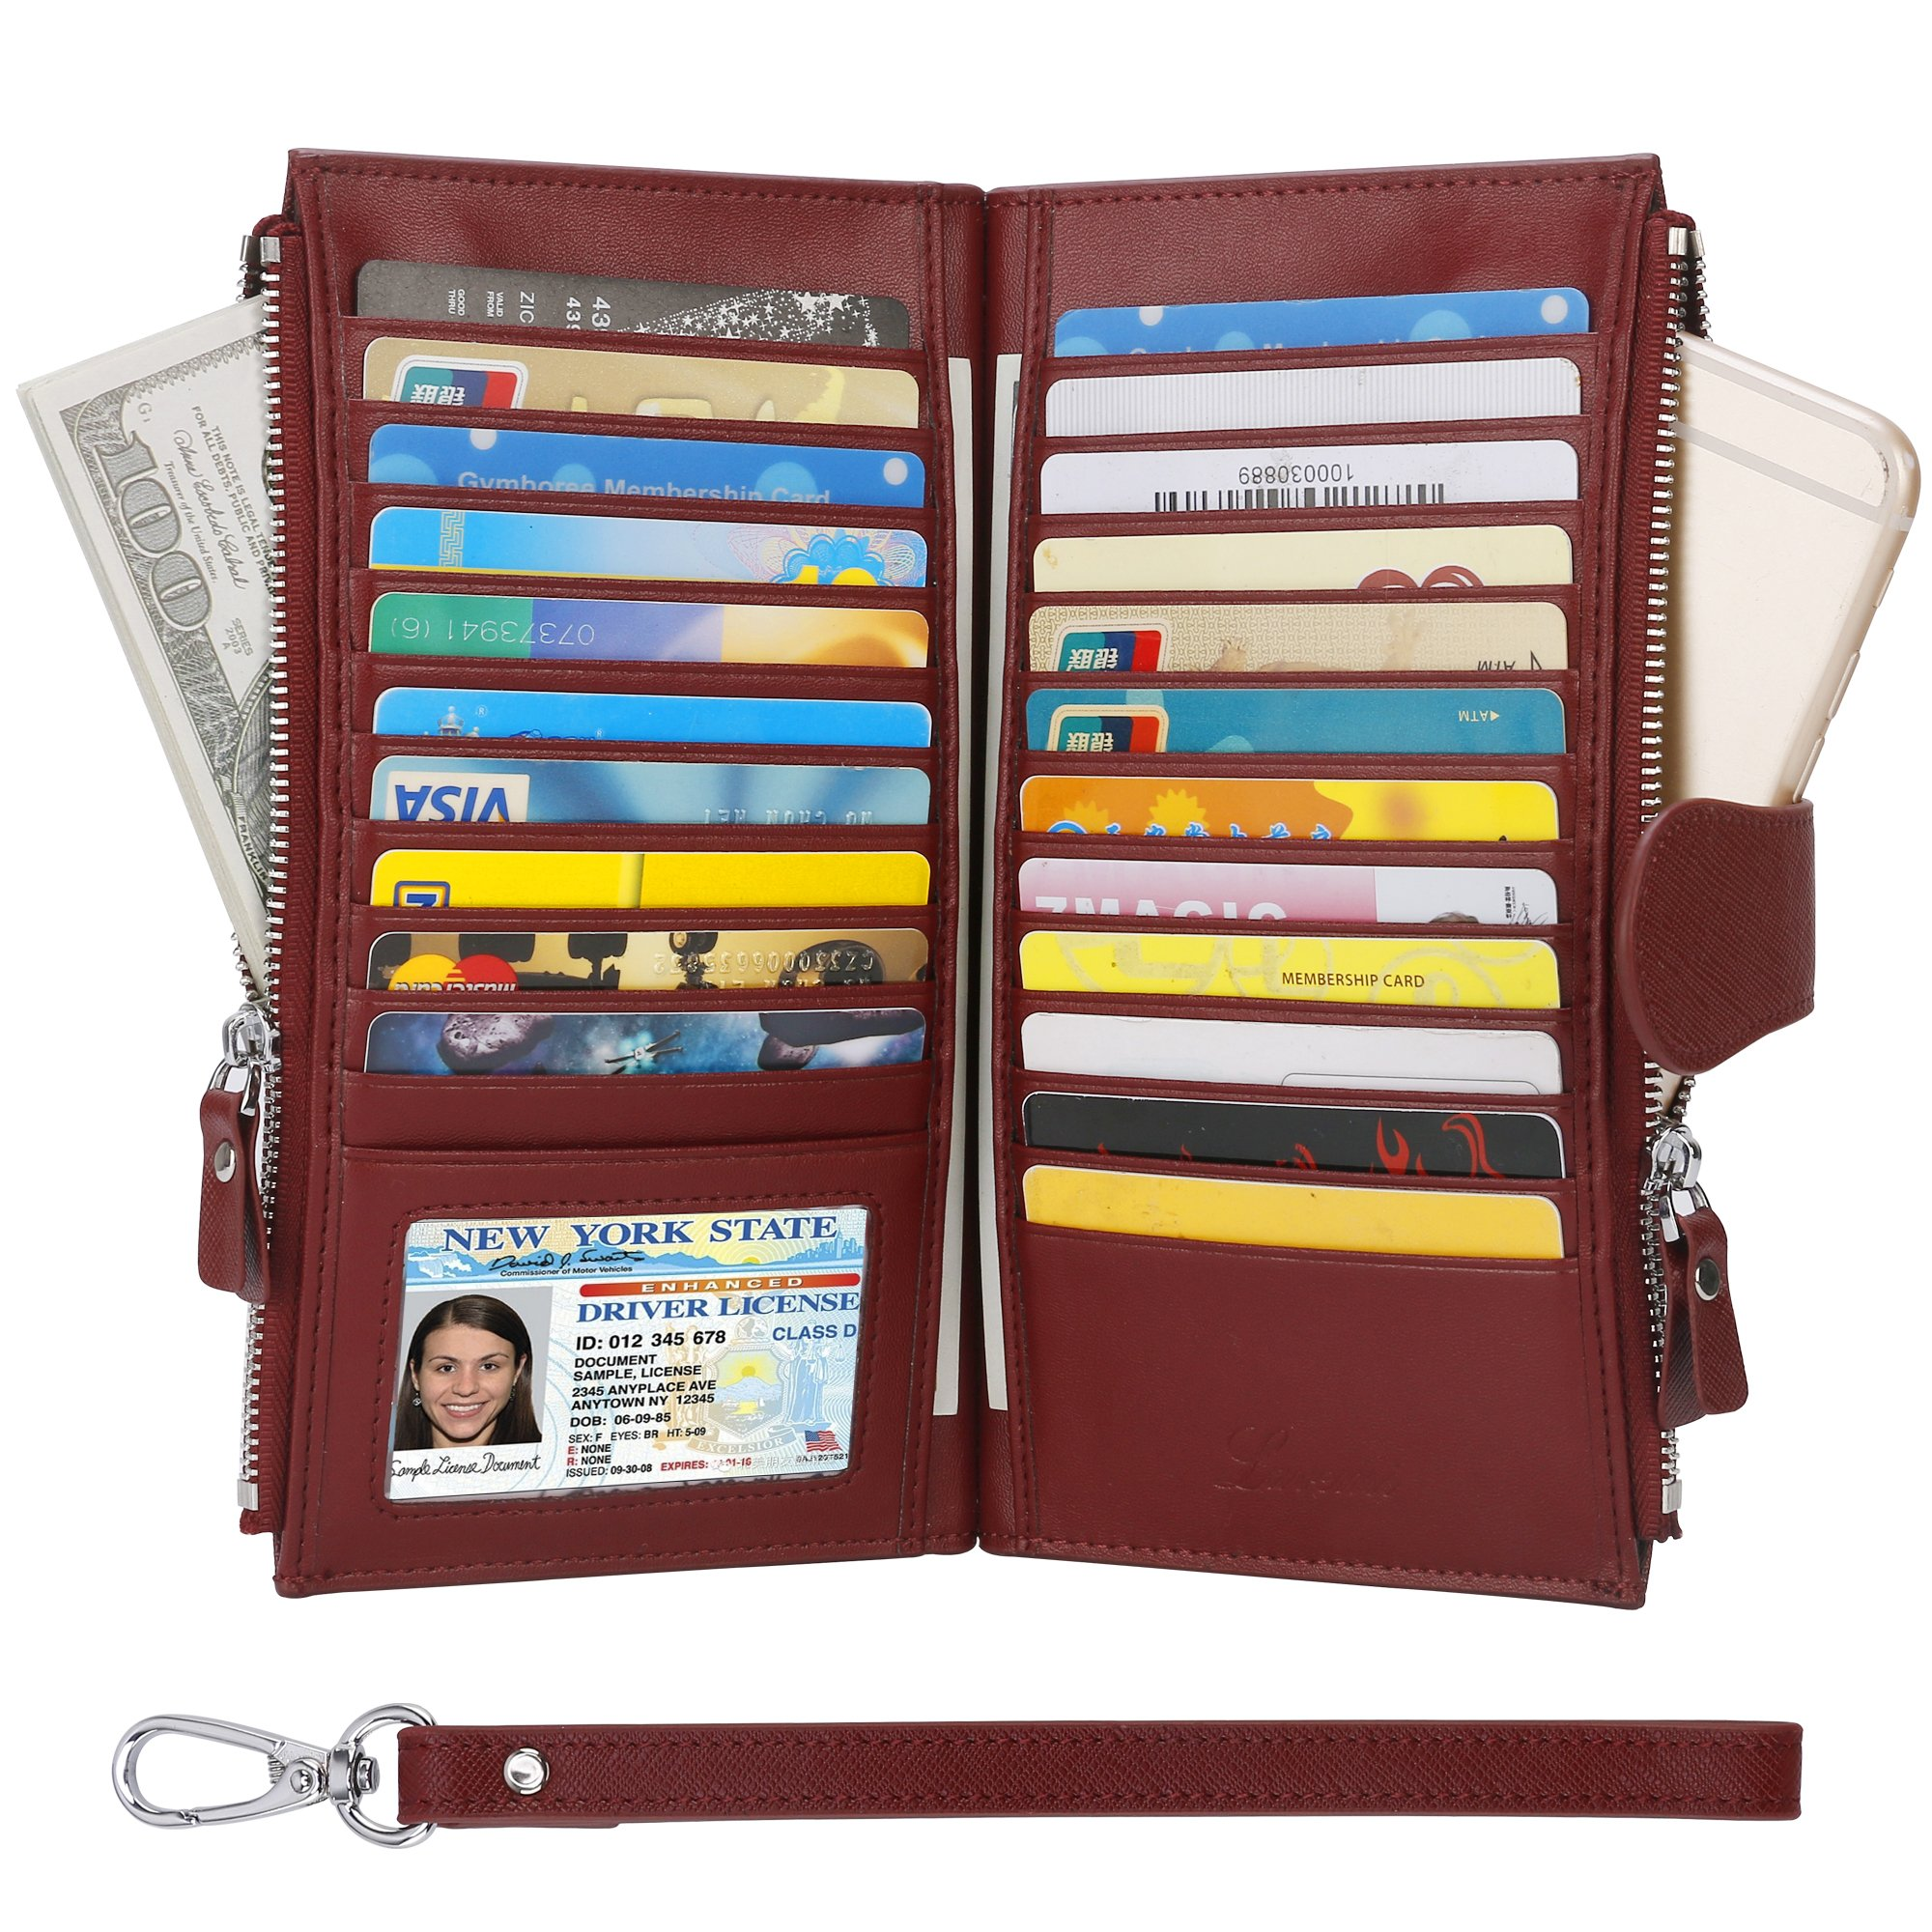 Wallets for Women,Womens RFID Blocking Genuine Leather Bifold Multi Card Case Wallet with Zipper Pockets(Wine Red)